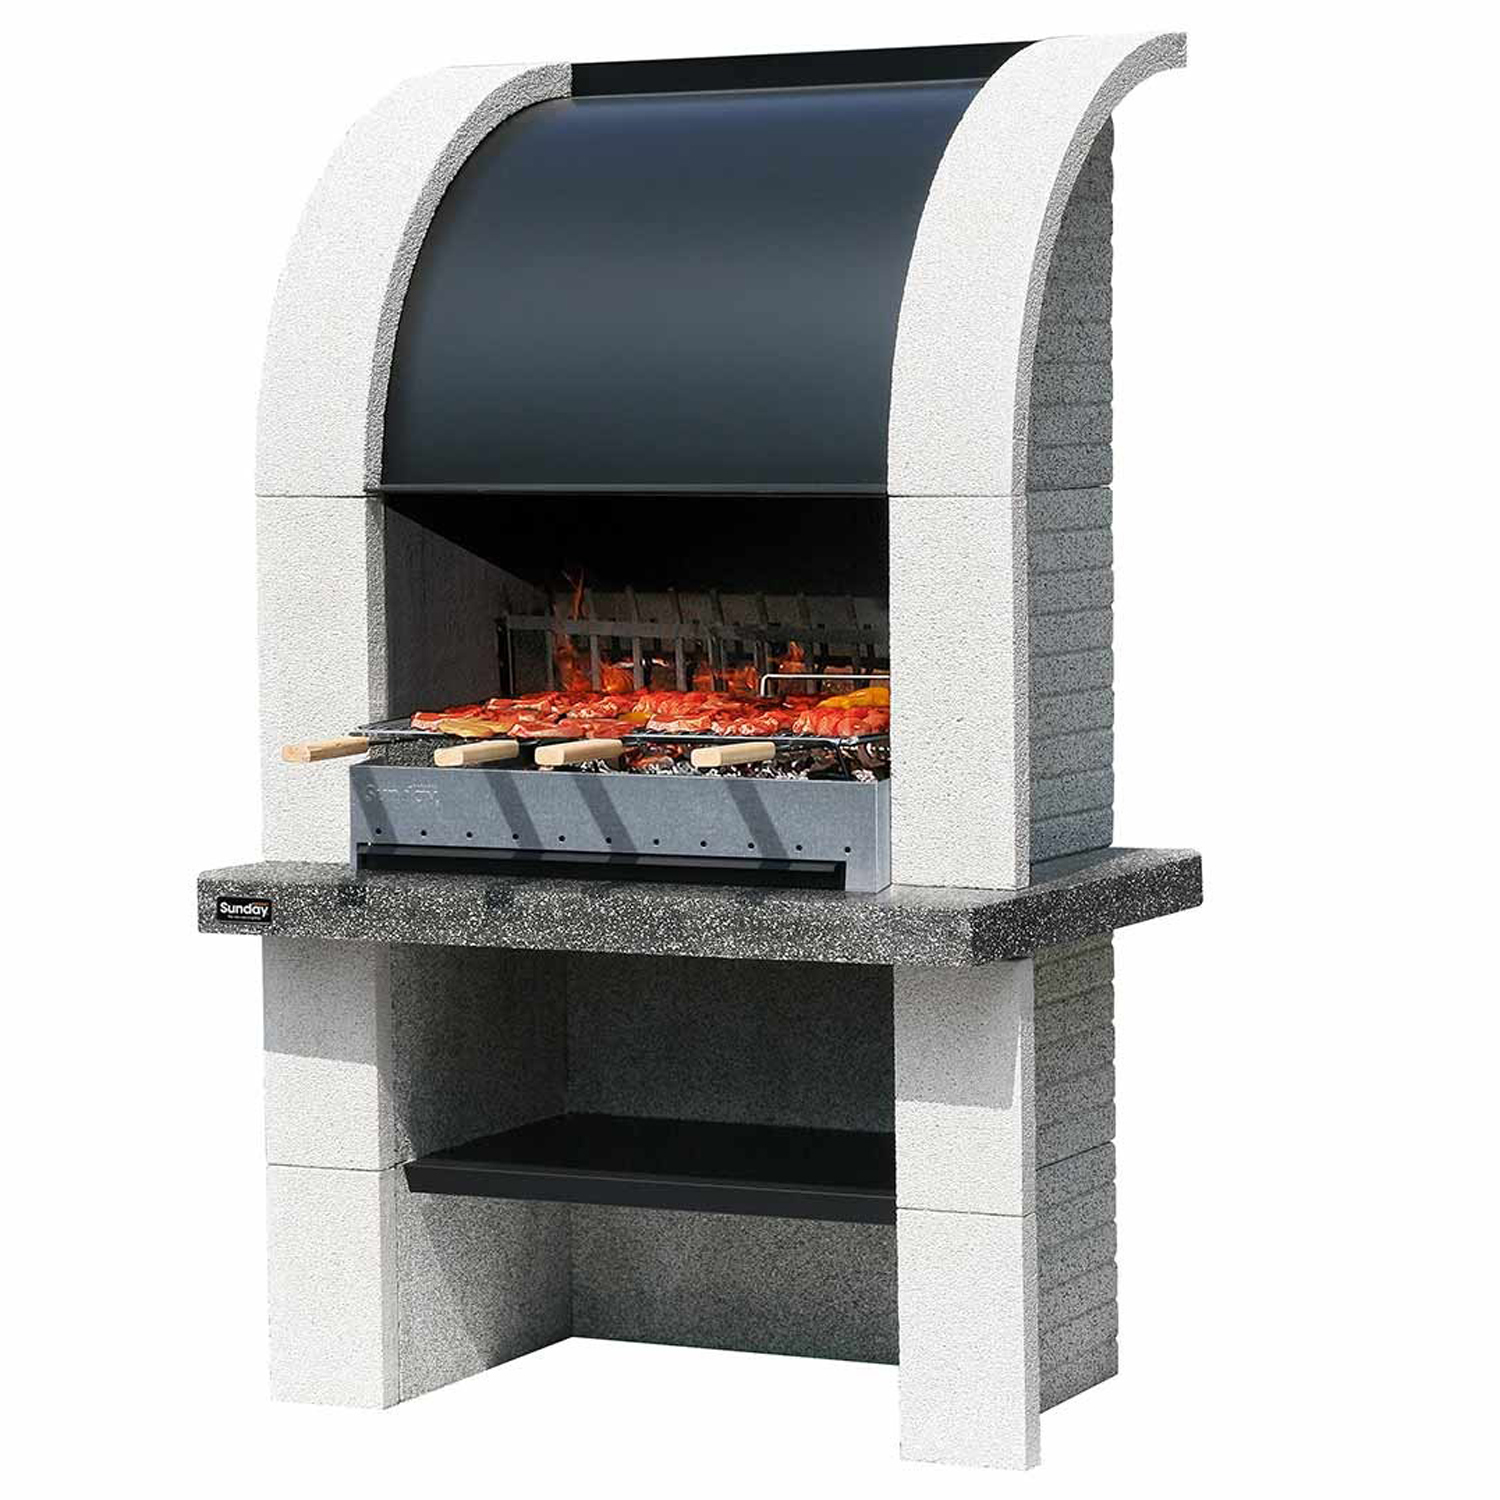 sunday grillkamin montreal crystal gartenkamin au engrill bbq au enkamin ebay. Black Bedroom Furniture Sets. Home Design Ideas